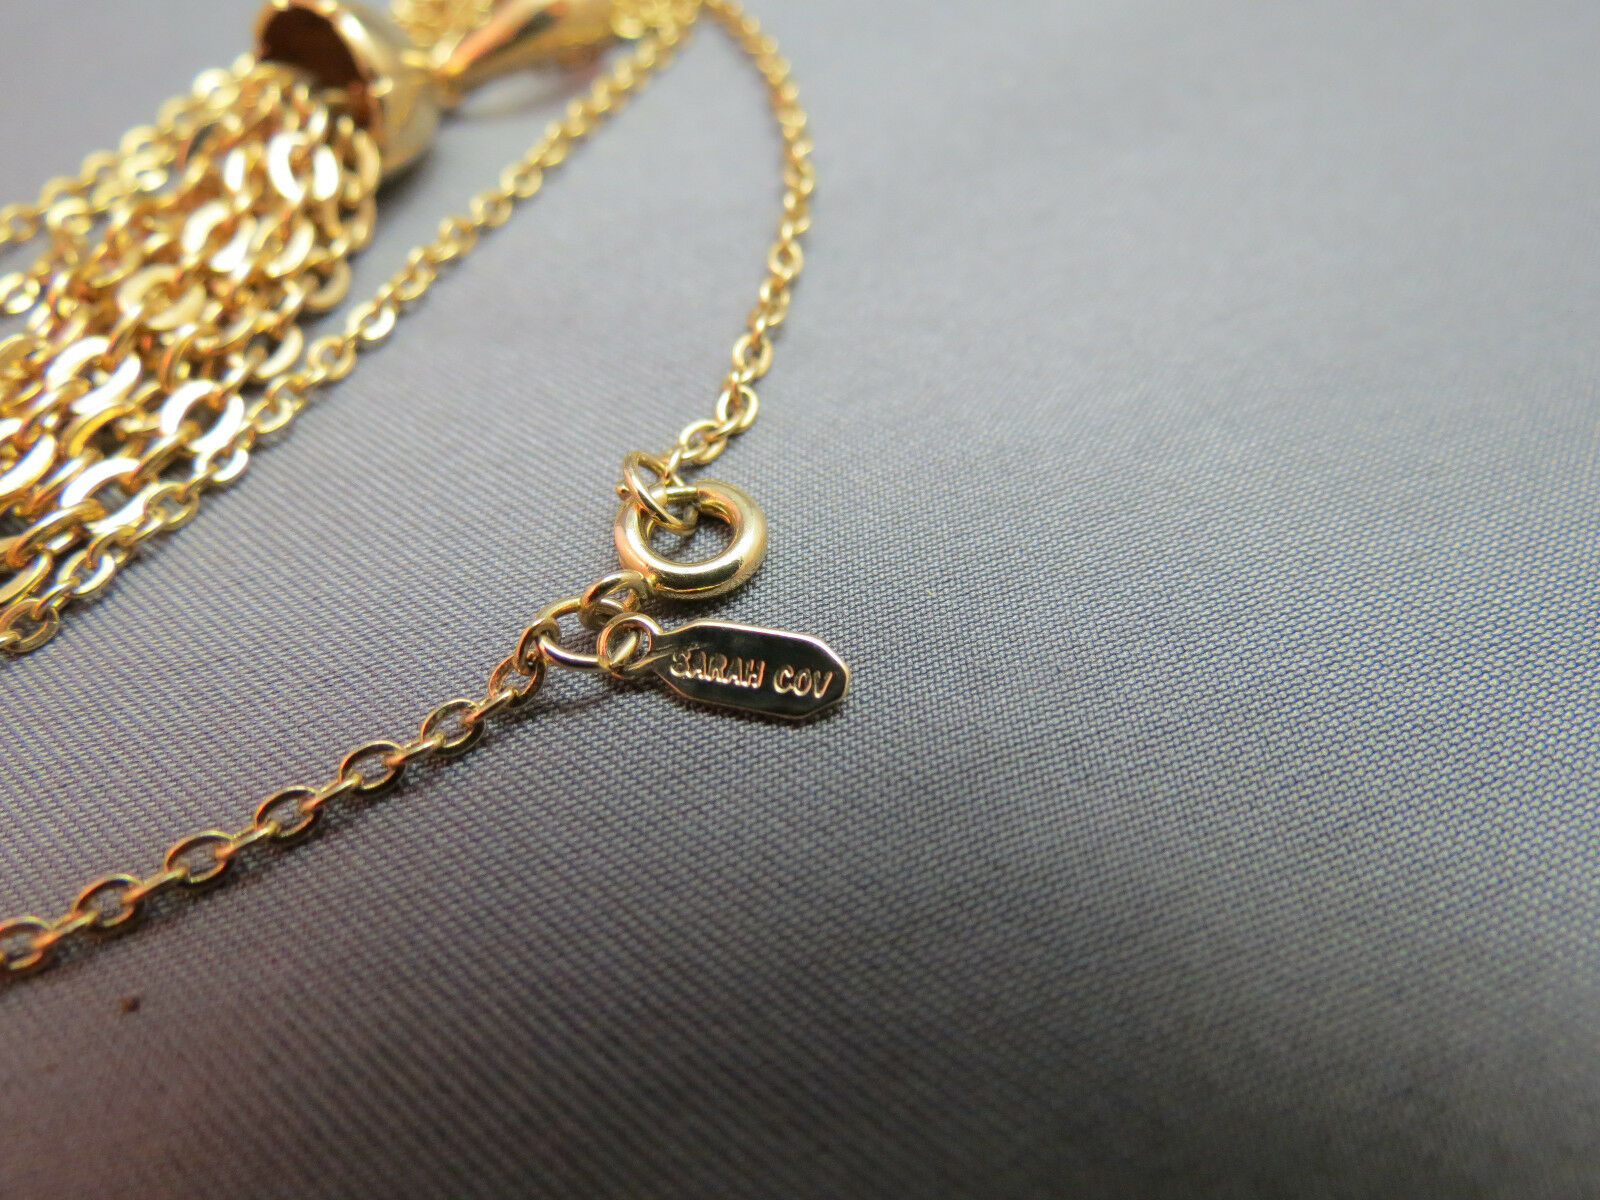 """VTG Sarah Coventry Chain Necklace Tassel Pendant Gold Plated 23"""" Smooth Finish image 5"""